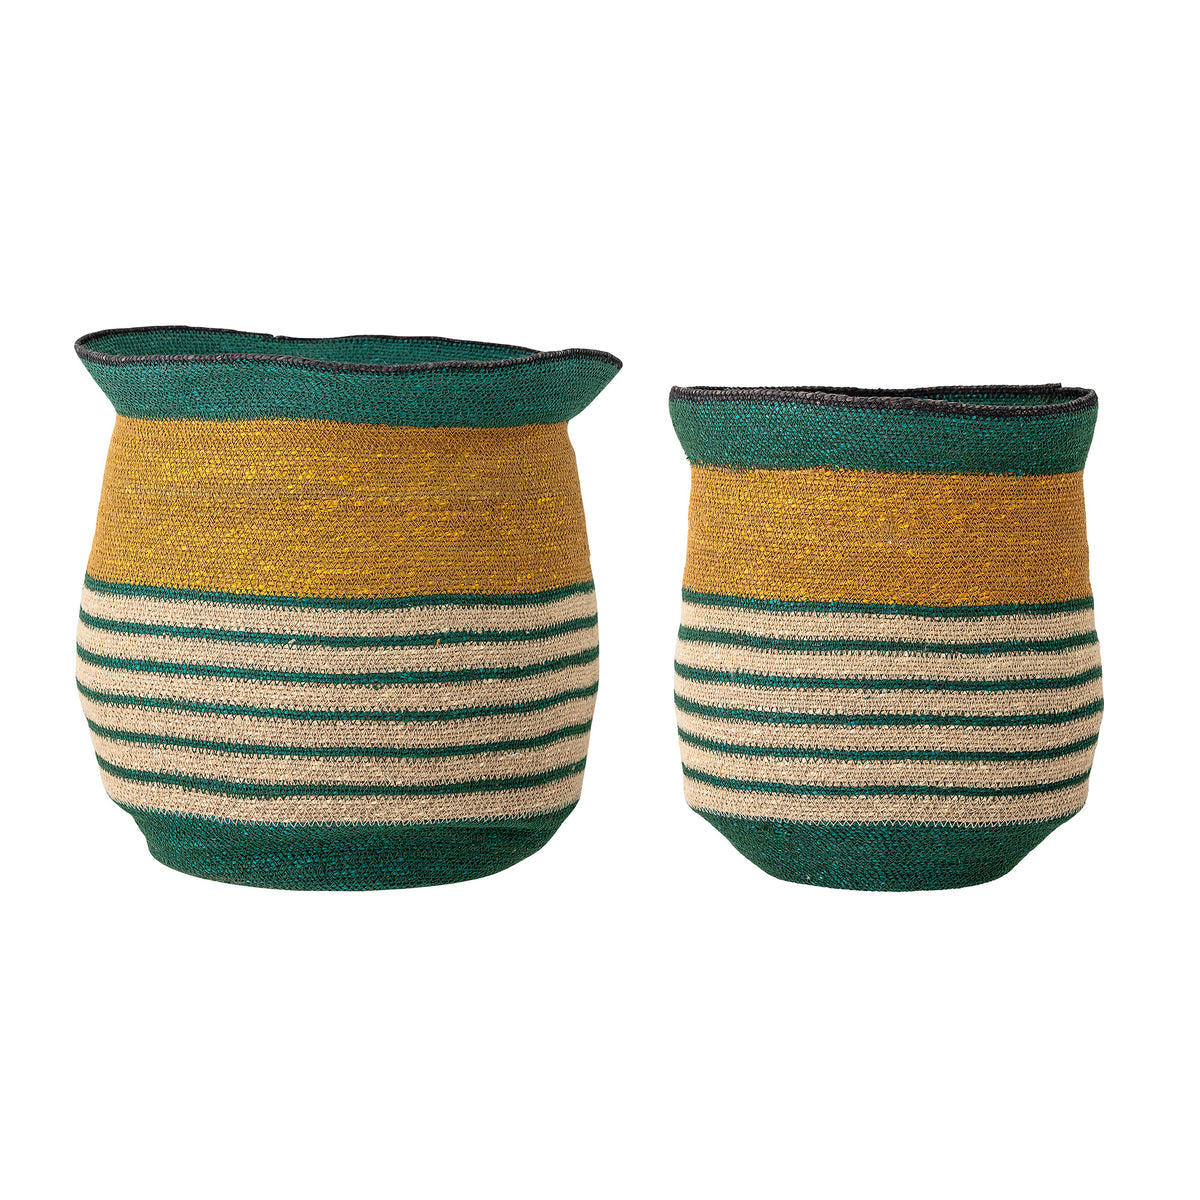 Striped seagrass basket in two sizes